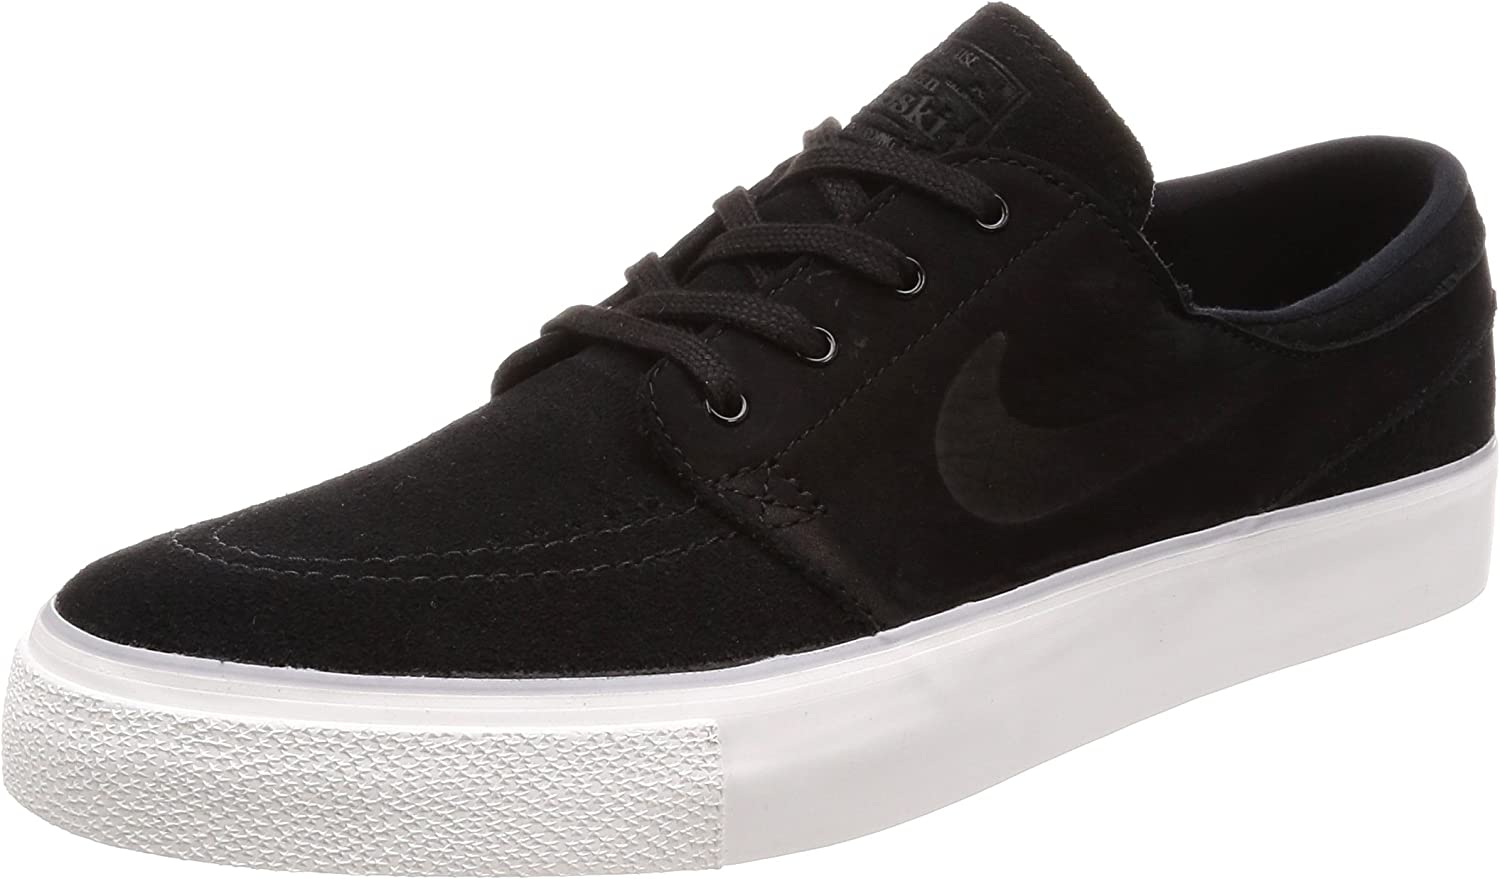 d8383feccefe3 Nike Sb Zoom Janoski Ht shoes Men s s Fitness nhxdeo1512-New Shoes ...